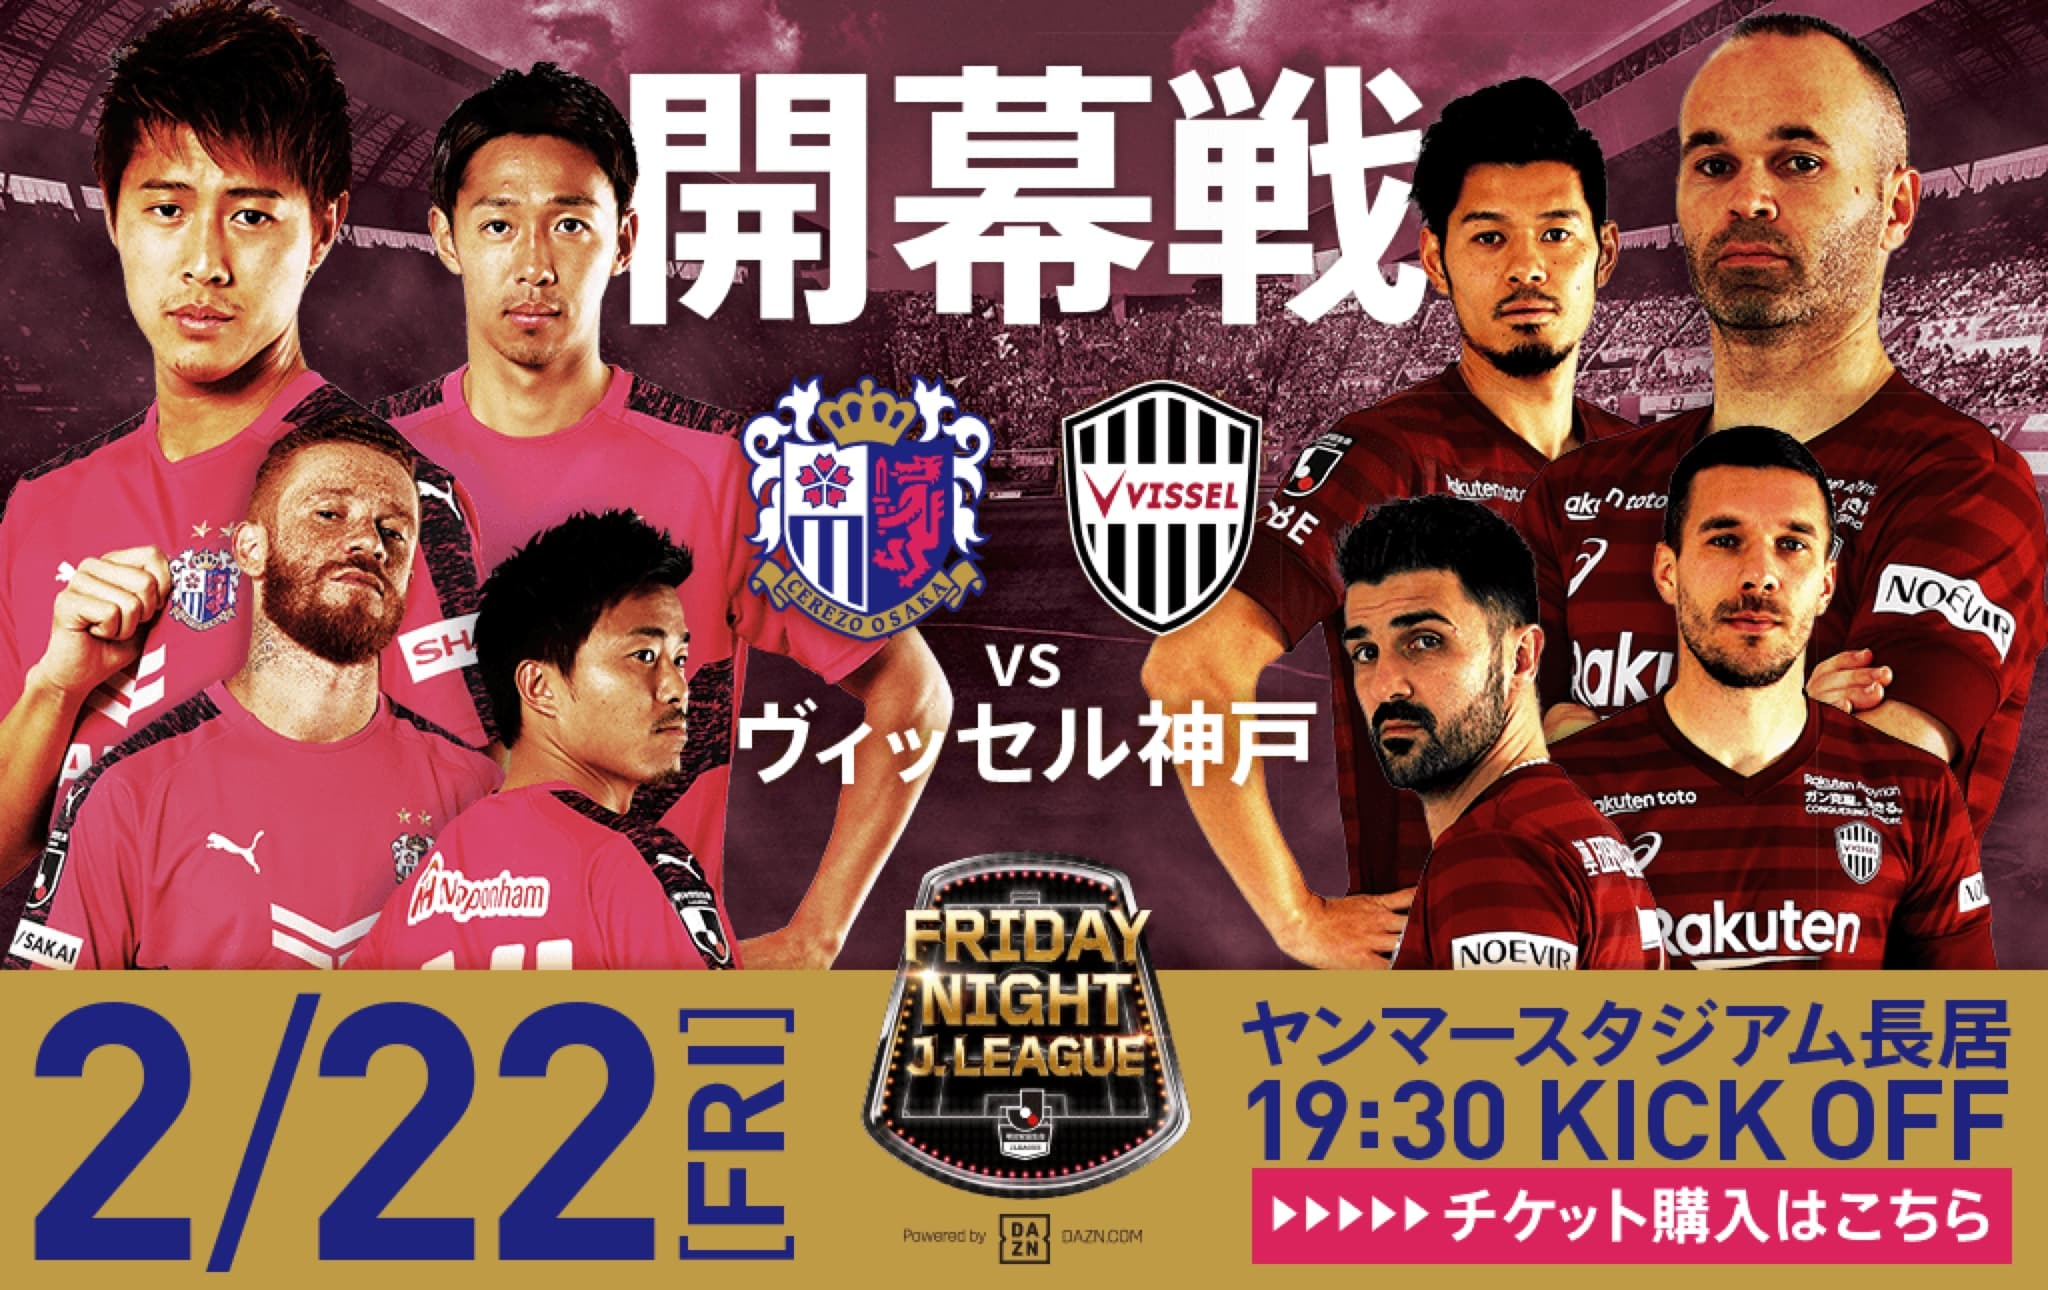 2019 NEW SEASON KICK OFF 2/22 FRI ヤンマースタジアム長居 19:30 KICK OFF